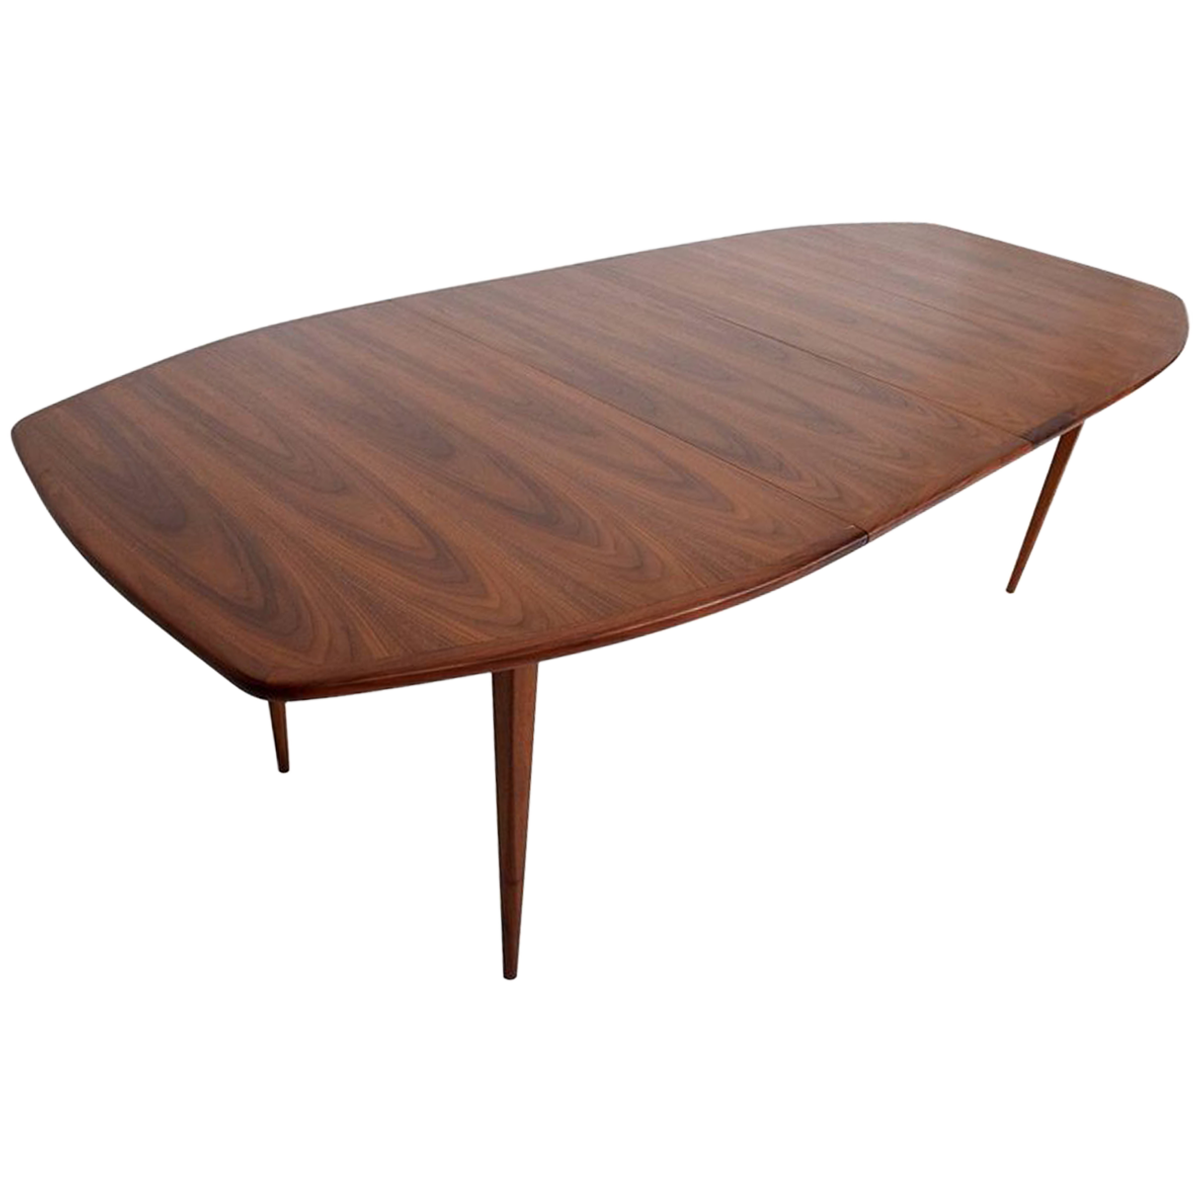 Walnut Dining Table With Extensions Dining Room Walnut Dining